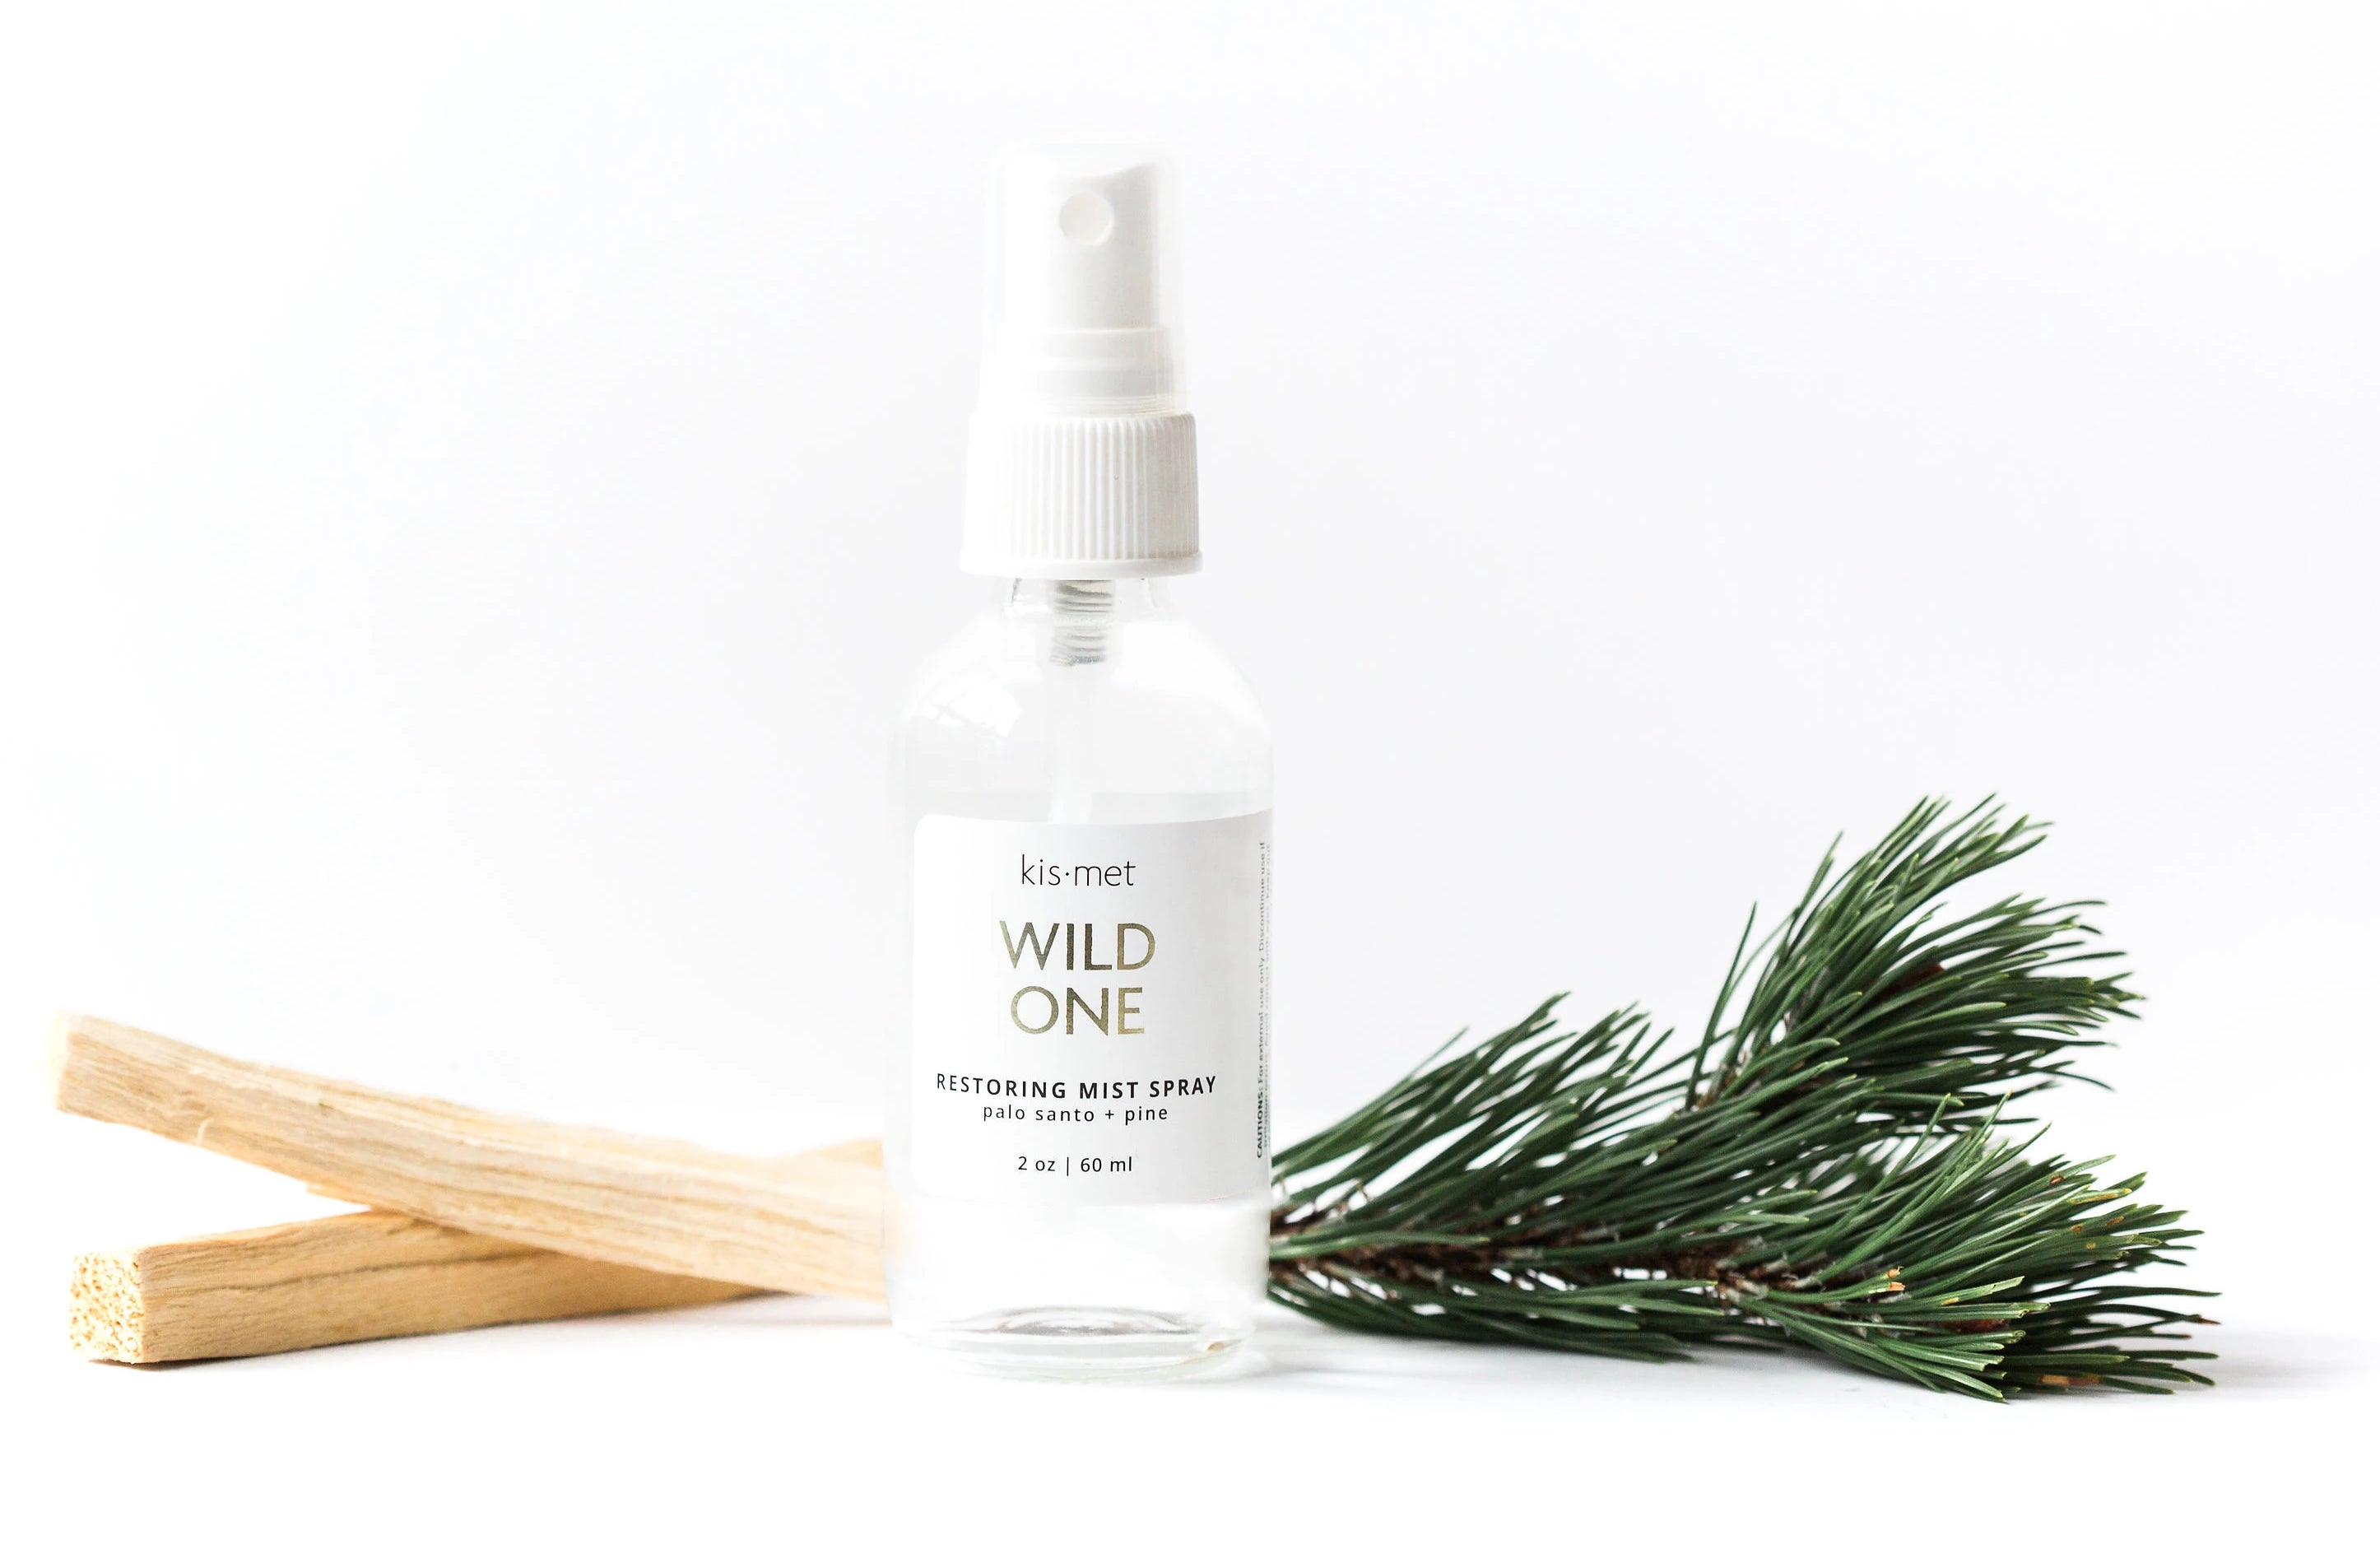 Wild One - Restoring Mist Spray